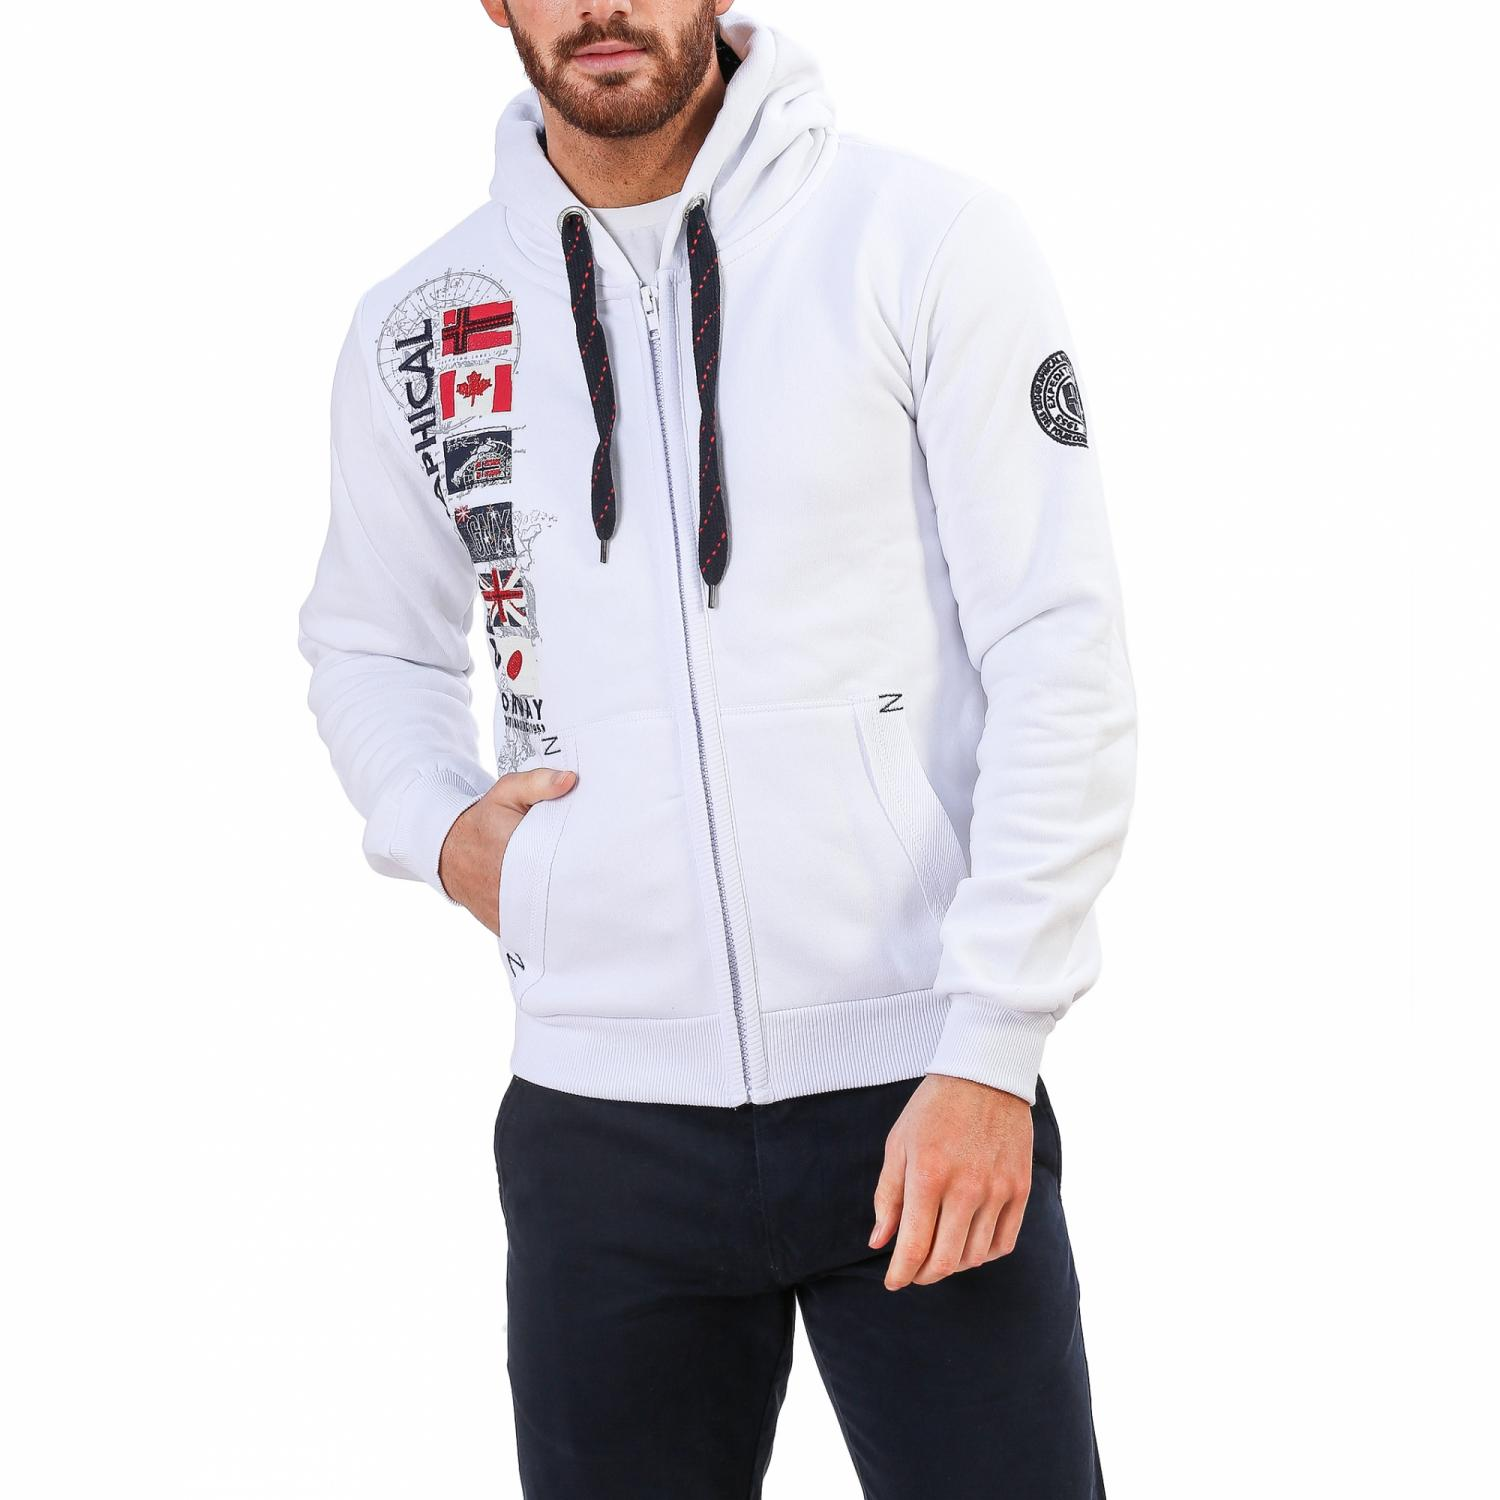 26e4be746bb Geographical Norway Ανδρικό Φουτερ | ferabati.man.white - Modabar ...